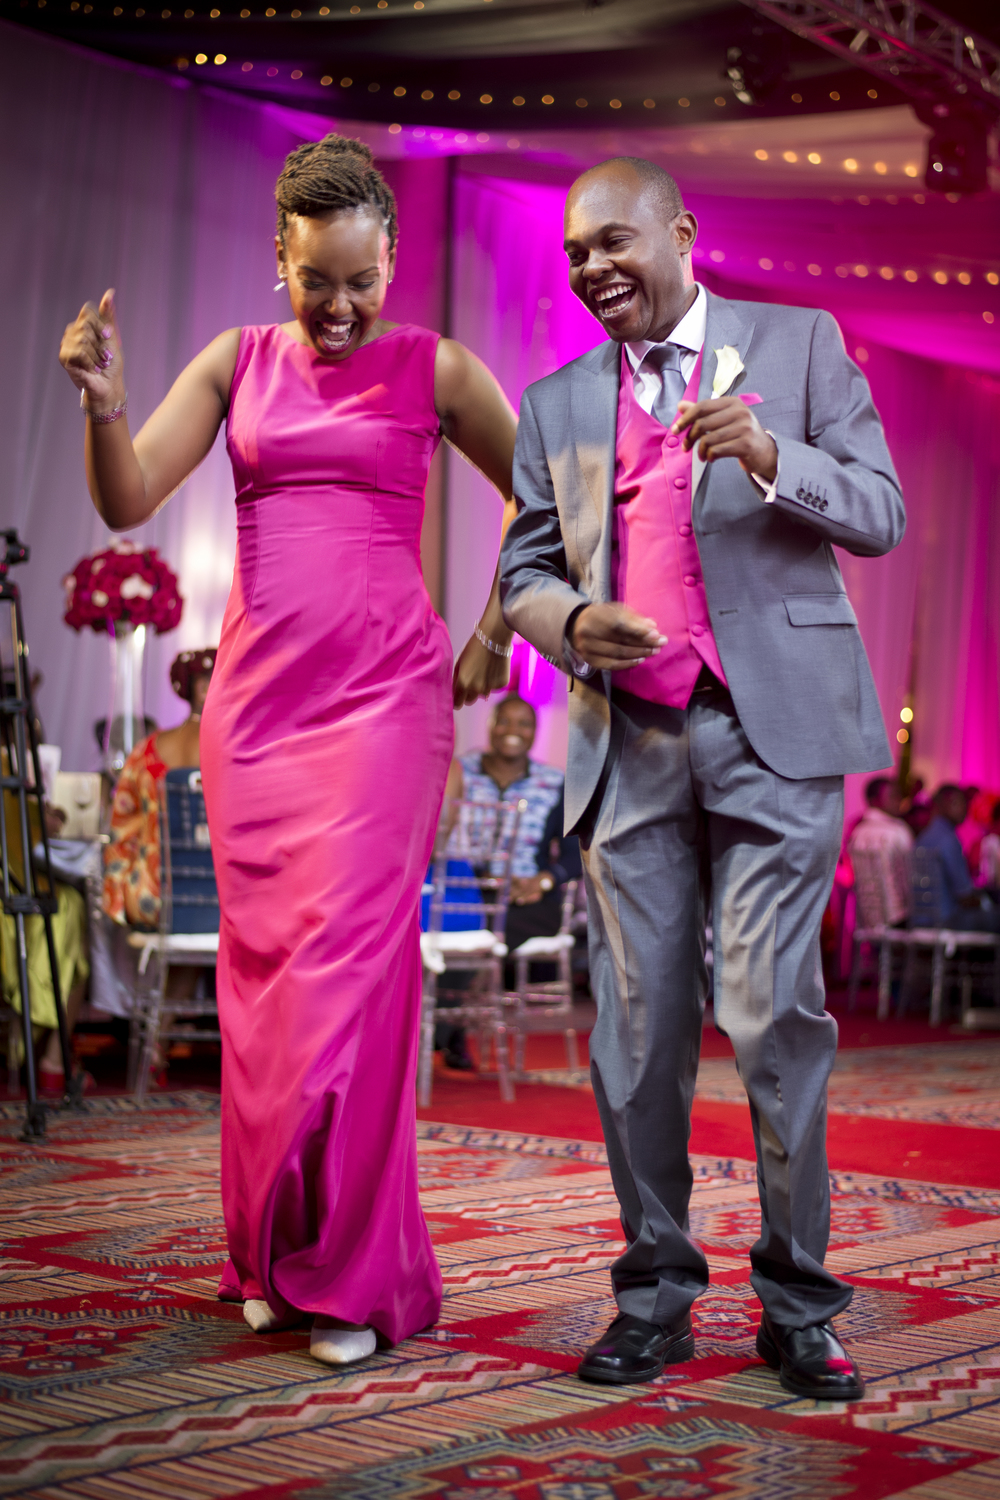 1272©Thomsonphotography Mutiga 2 May-2950.jpg